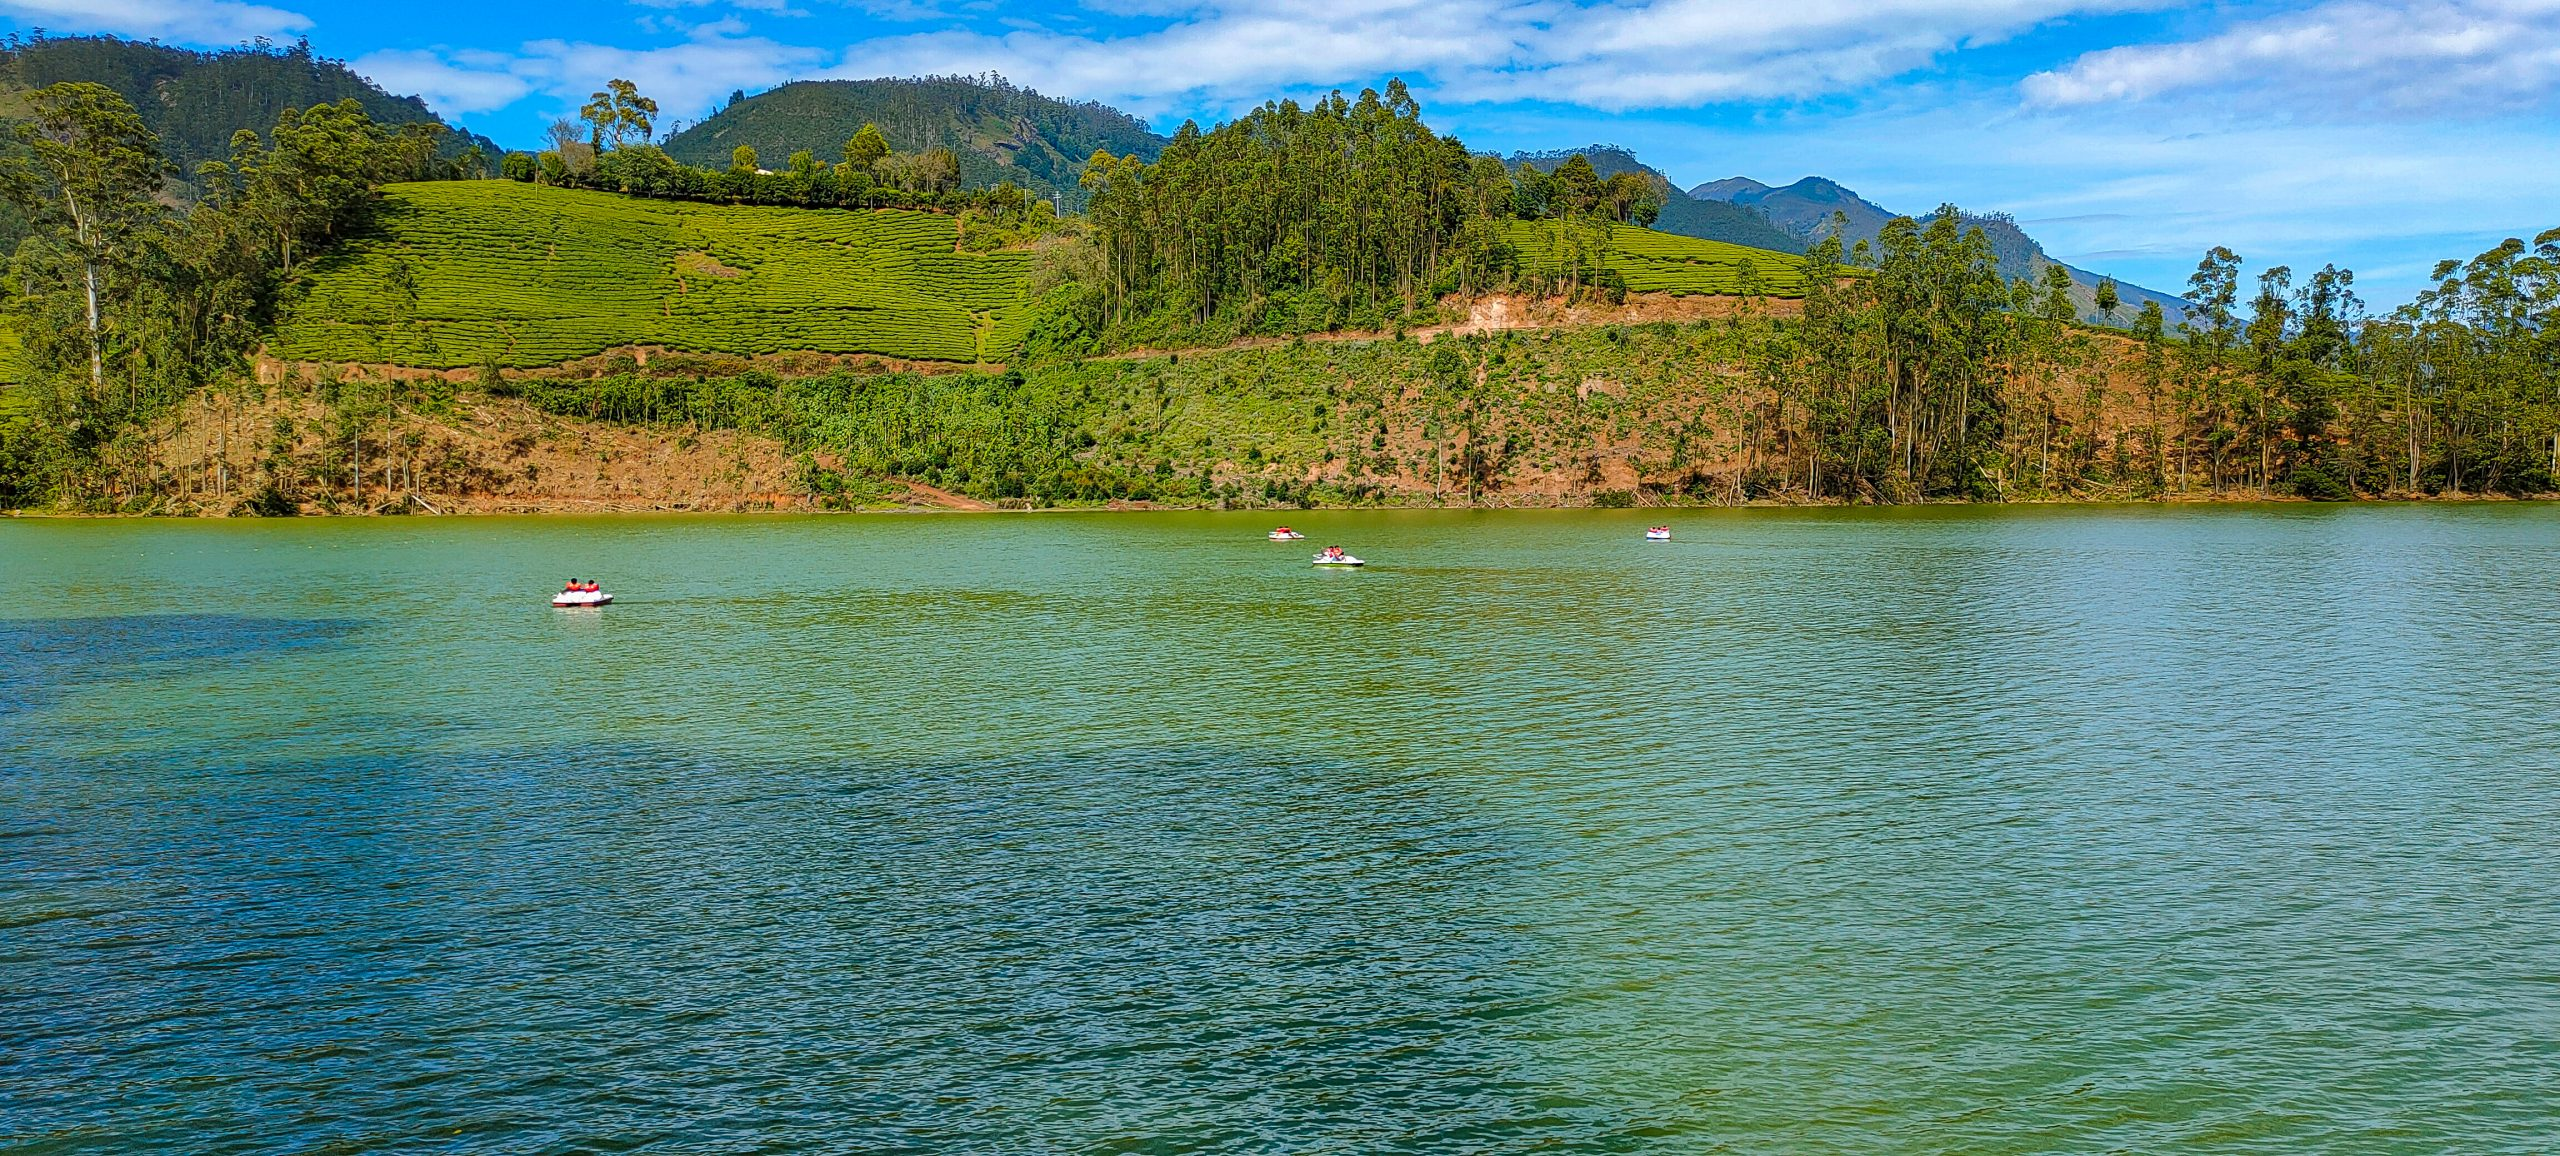 Kundala lake in Munnar